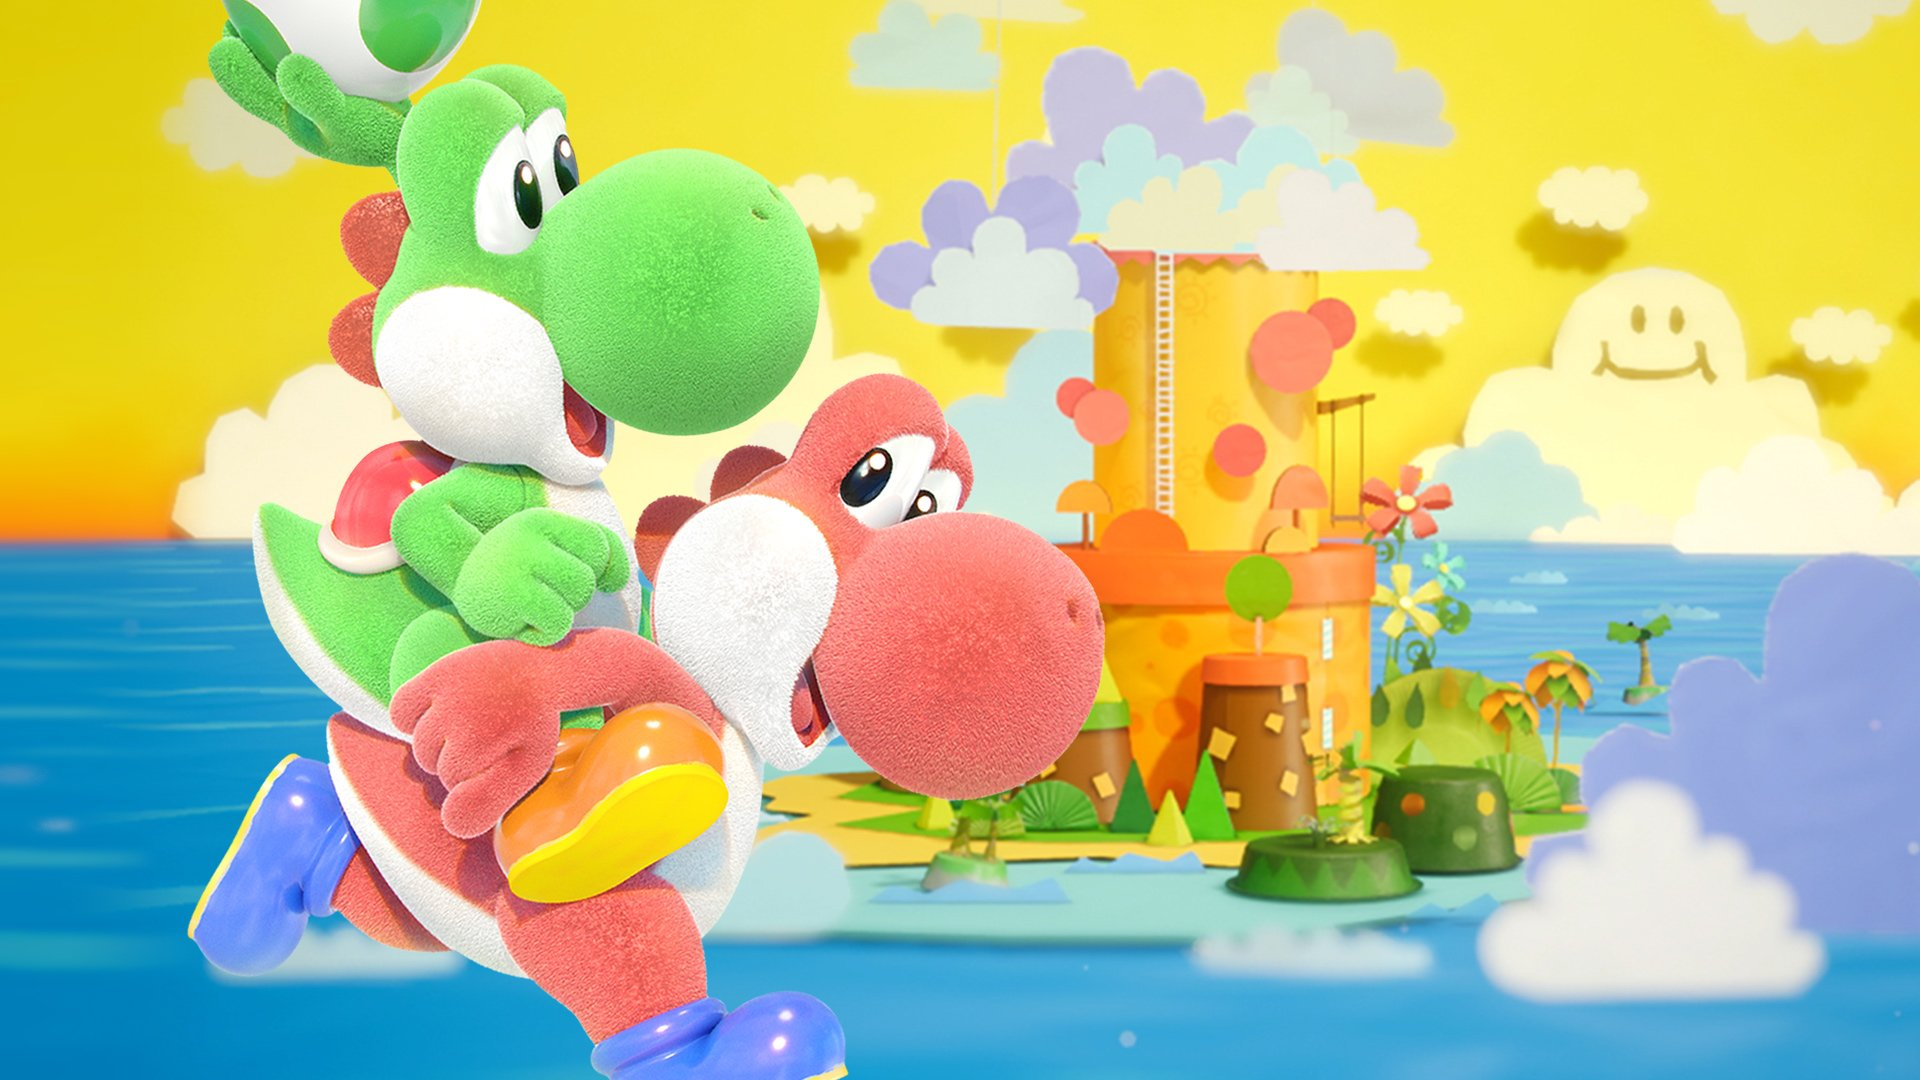 yoshis crafted world hd wallpaper 67351